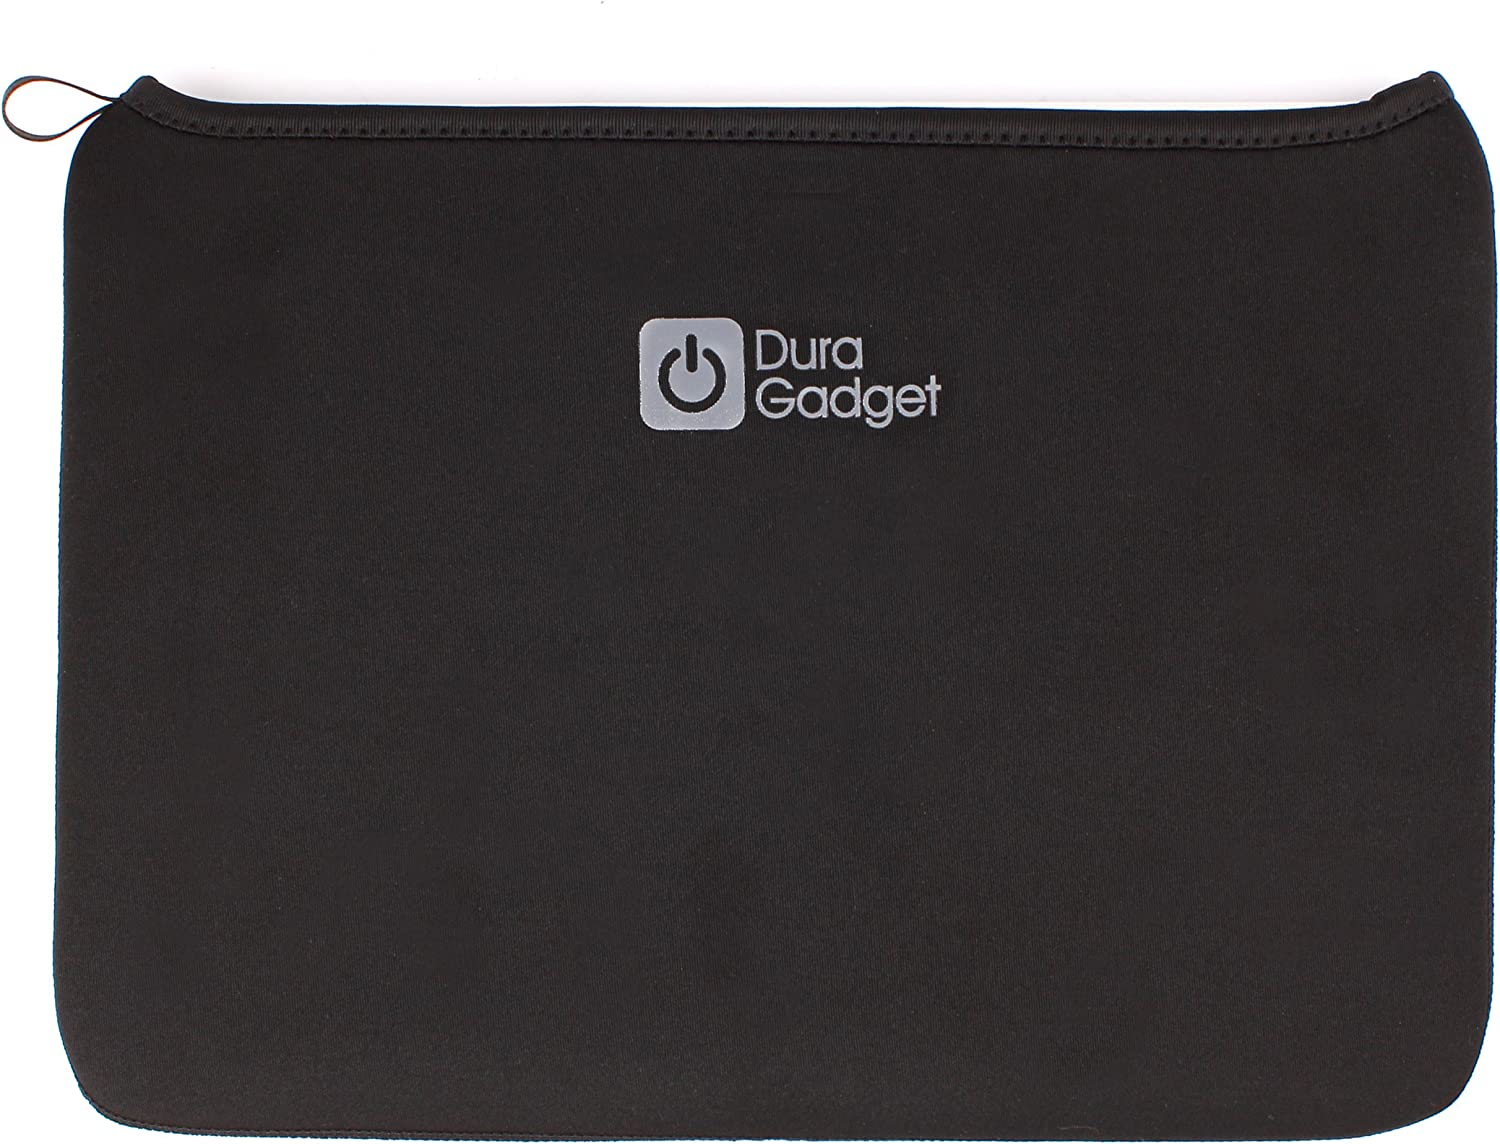 """DURAGADGET 13"""" Slip-in Black Carry Case - Suitable for Acer Switch Alpha 12 Laptop Made with Soft Neoprene Protective Material"""